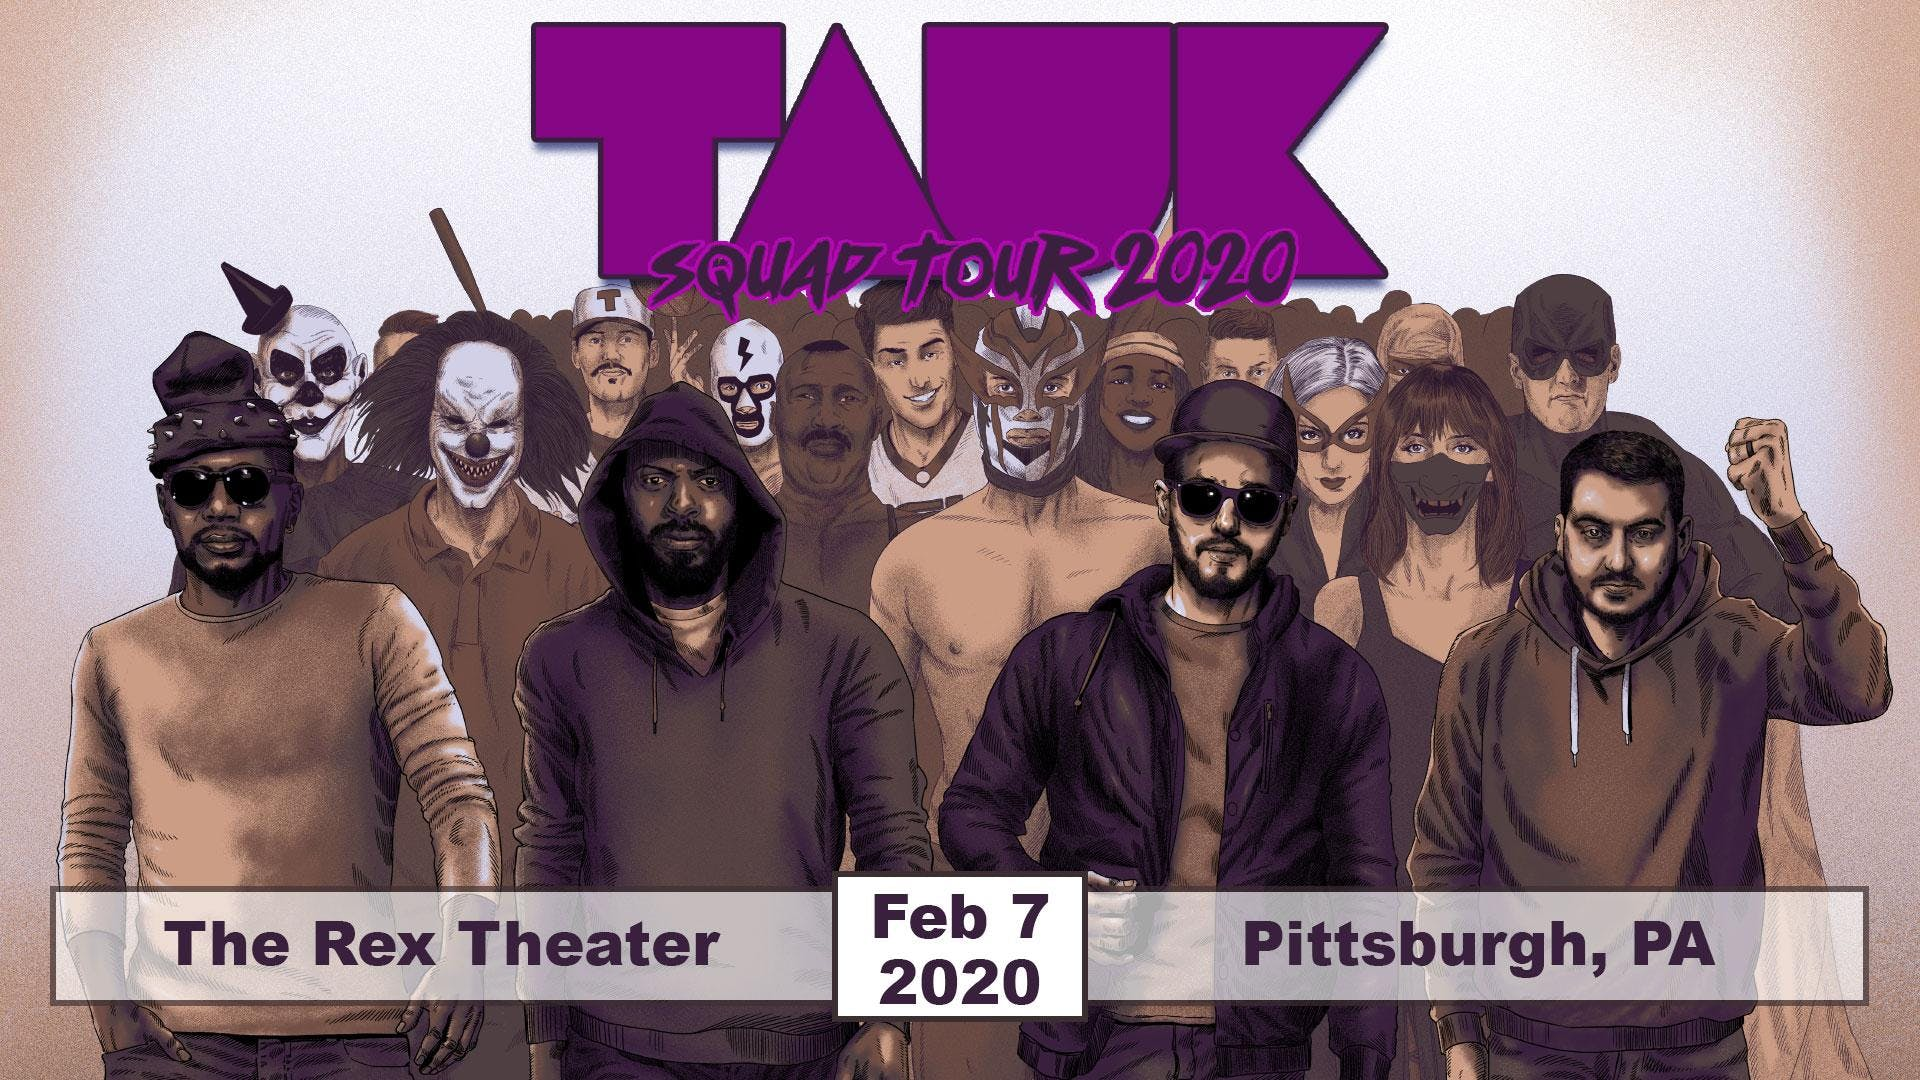 New Hip Hop Albums 2020.Tauk Squad Tour 2020 Tickets The Rex Theater